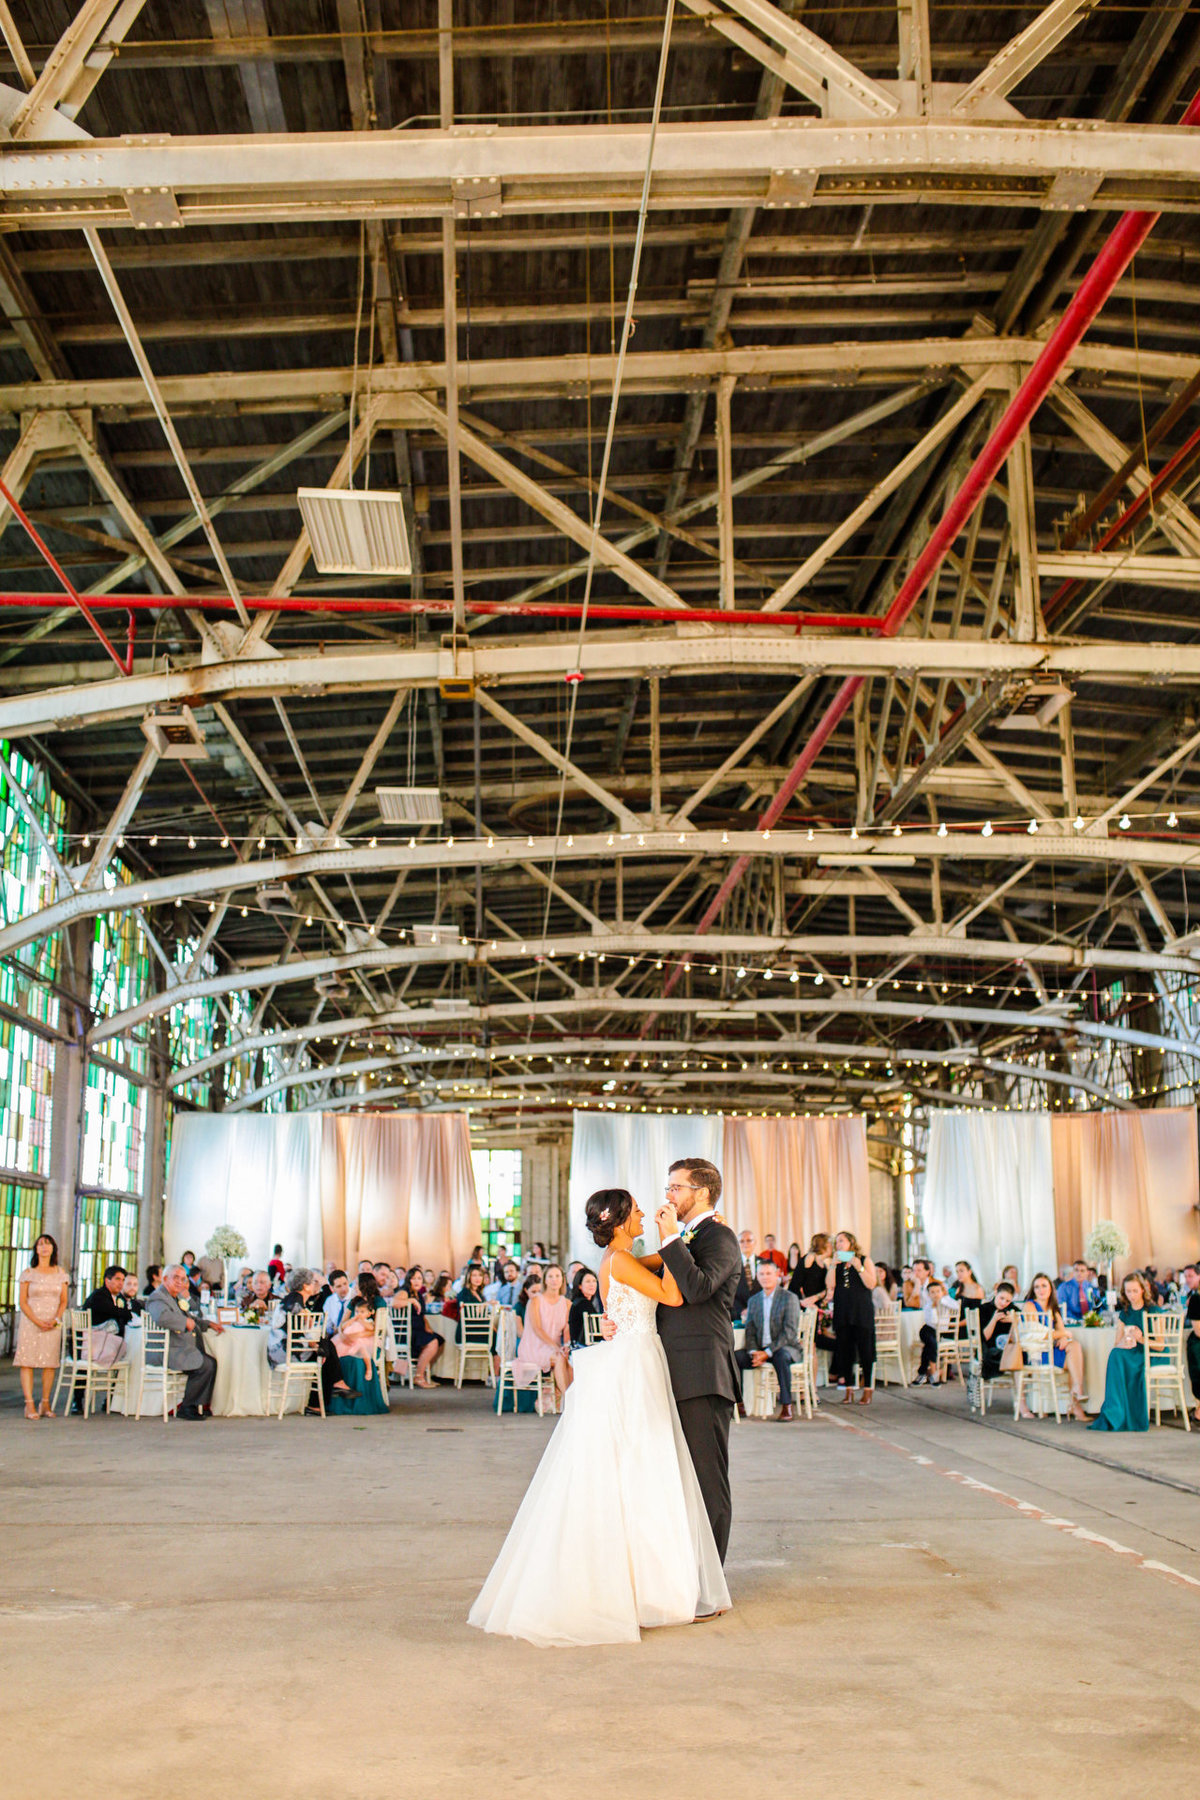 Albuquerque Wedding Photographer_Abq Rail Yards Reception_www.tylerbrooke.com_045